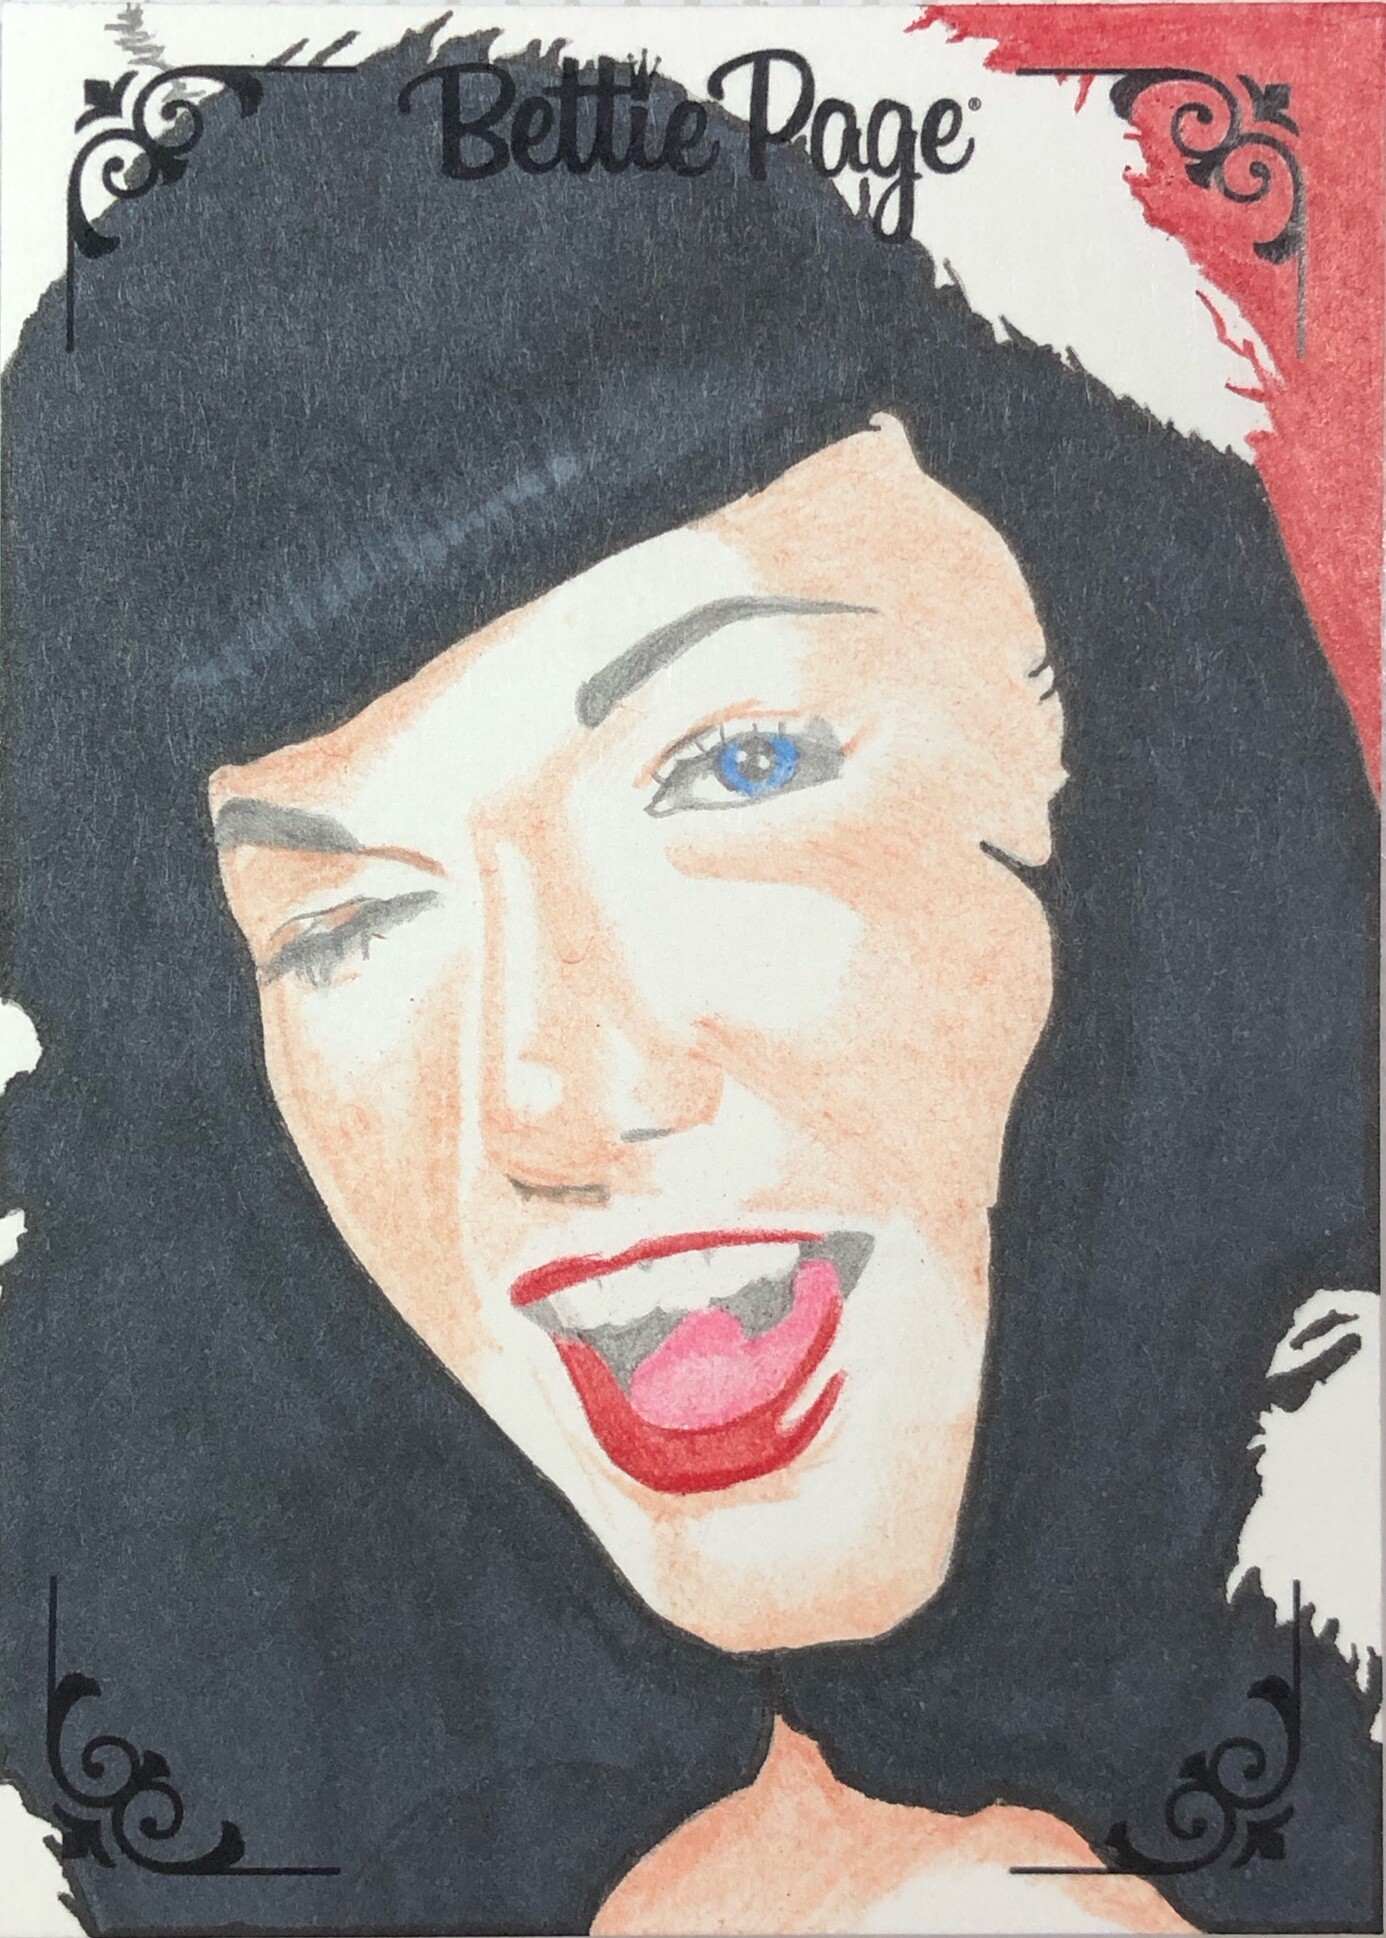 Dynamite Entertainment Officially licensed Bettie Page trading cards